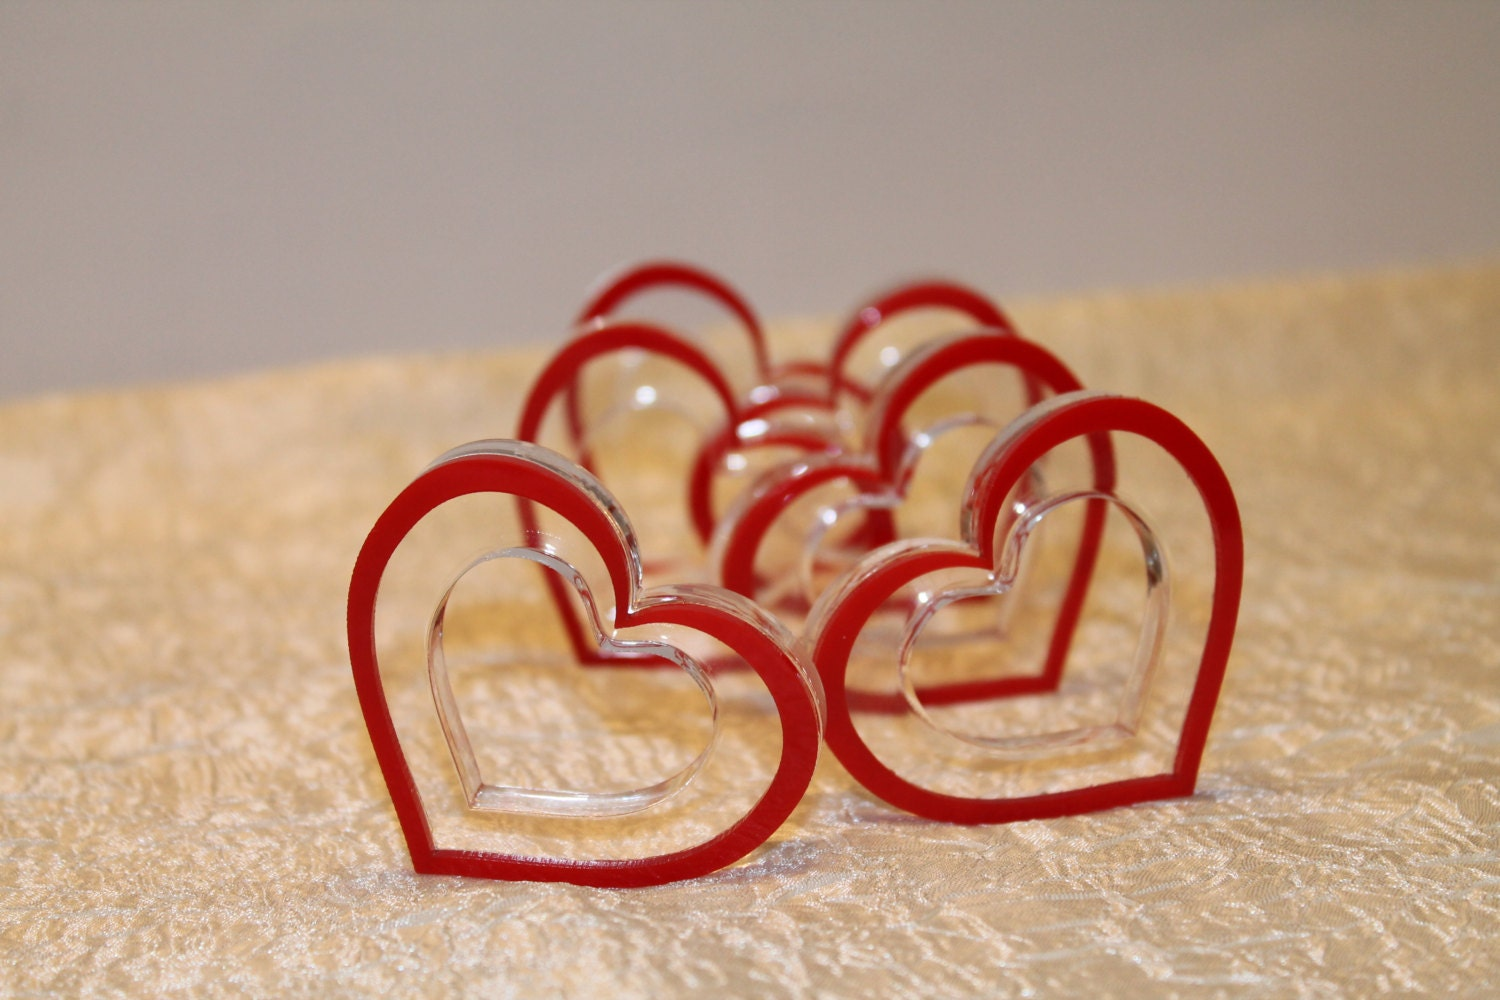 Valentine Centerpieces Napkin Ring Holders Red Heart Napkin Rings Valentine Day Gift Dinner Party Tableware Bridal Shower Decor Birthday